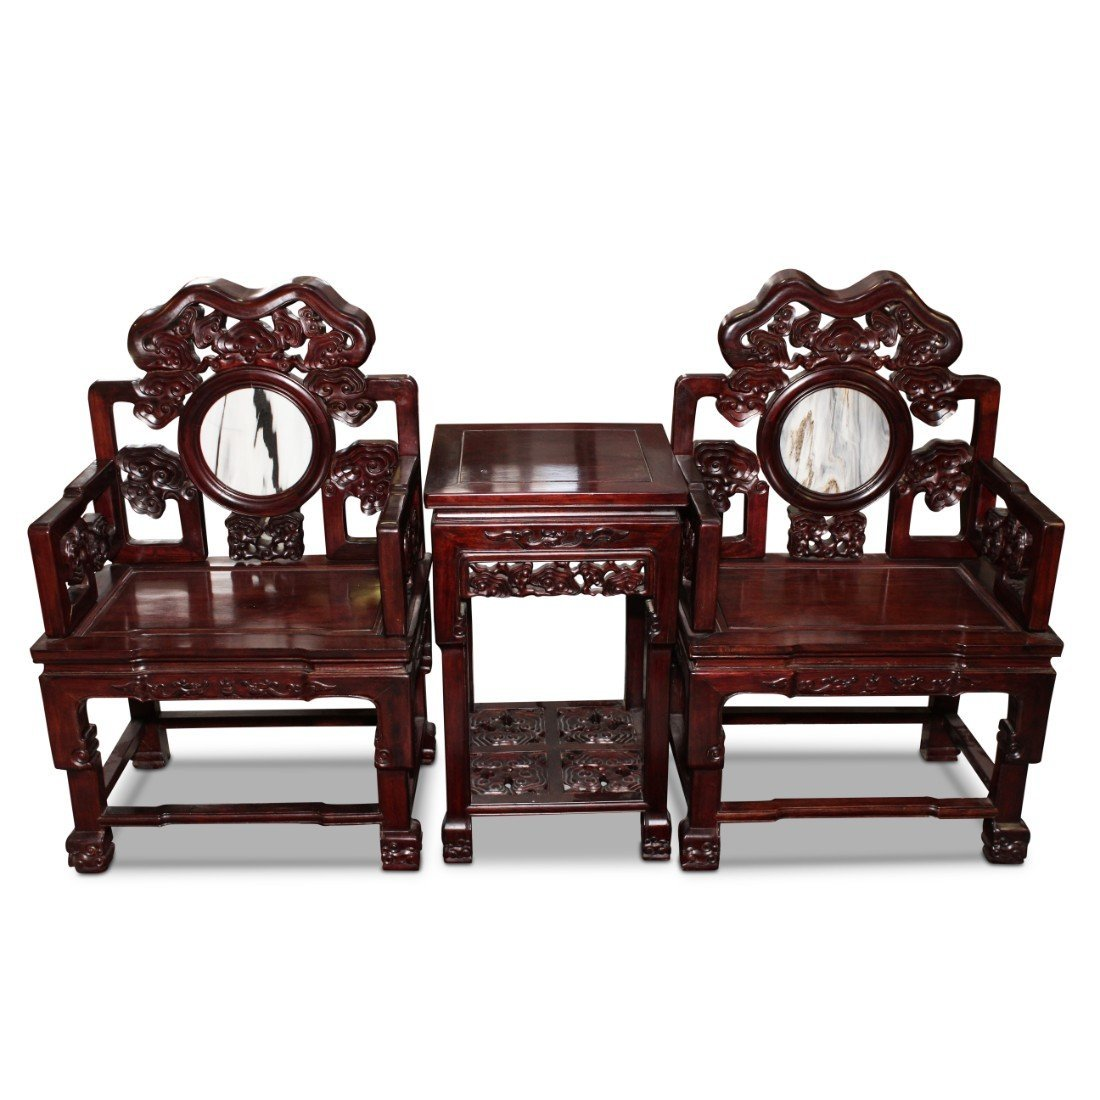 Large Pair of Chinese Chairs and Table,